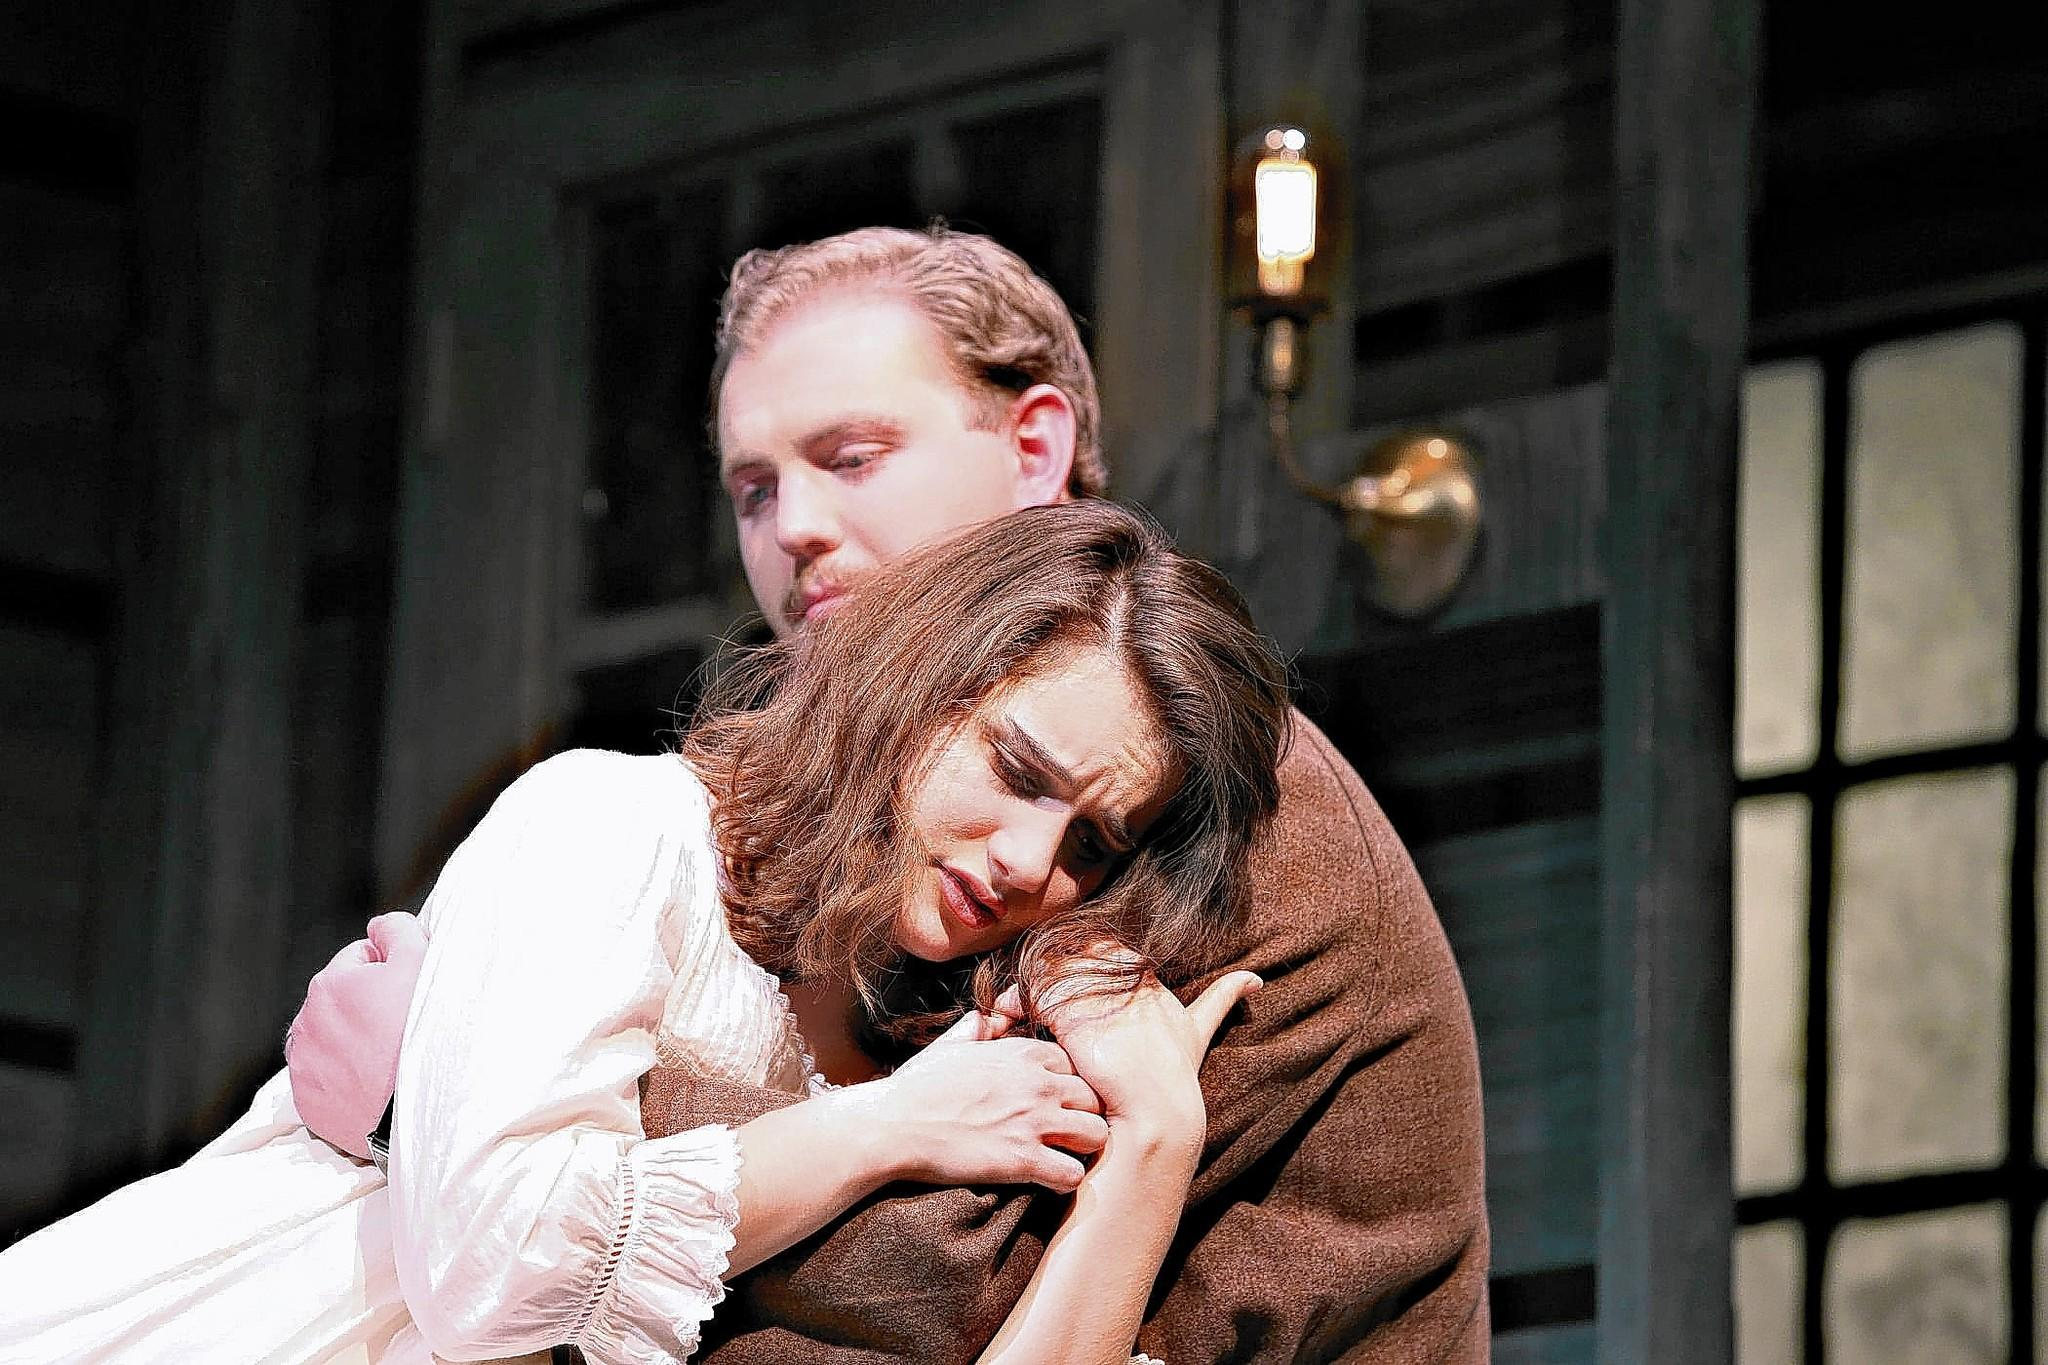 Anne Frank (Emma Santschi) is comforted by her father (Brett Lawlor) after having awakened from a nightmare in DeSales University's Act 1 production of 'The Diary of Anne Frank.'